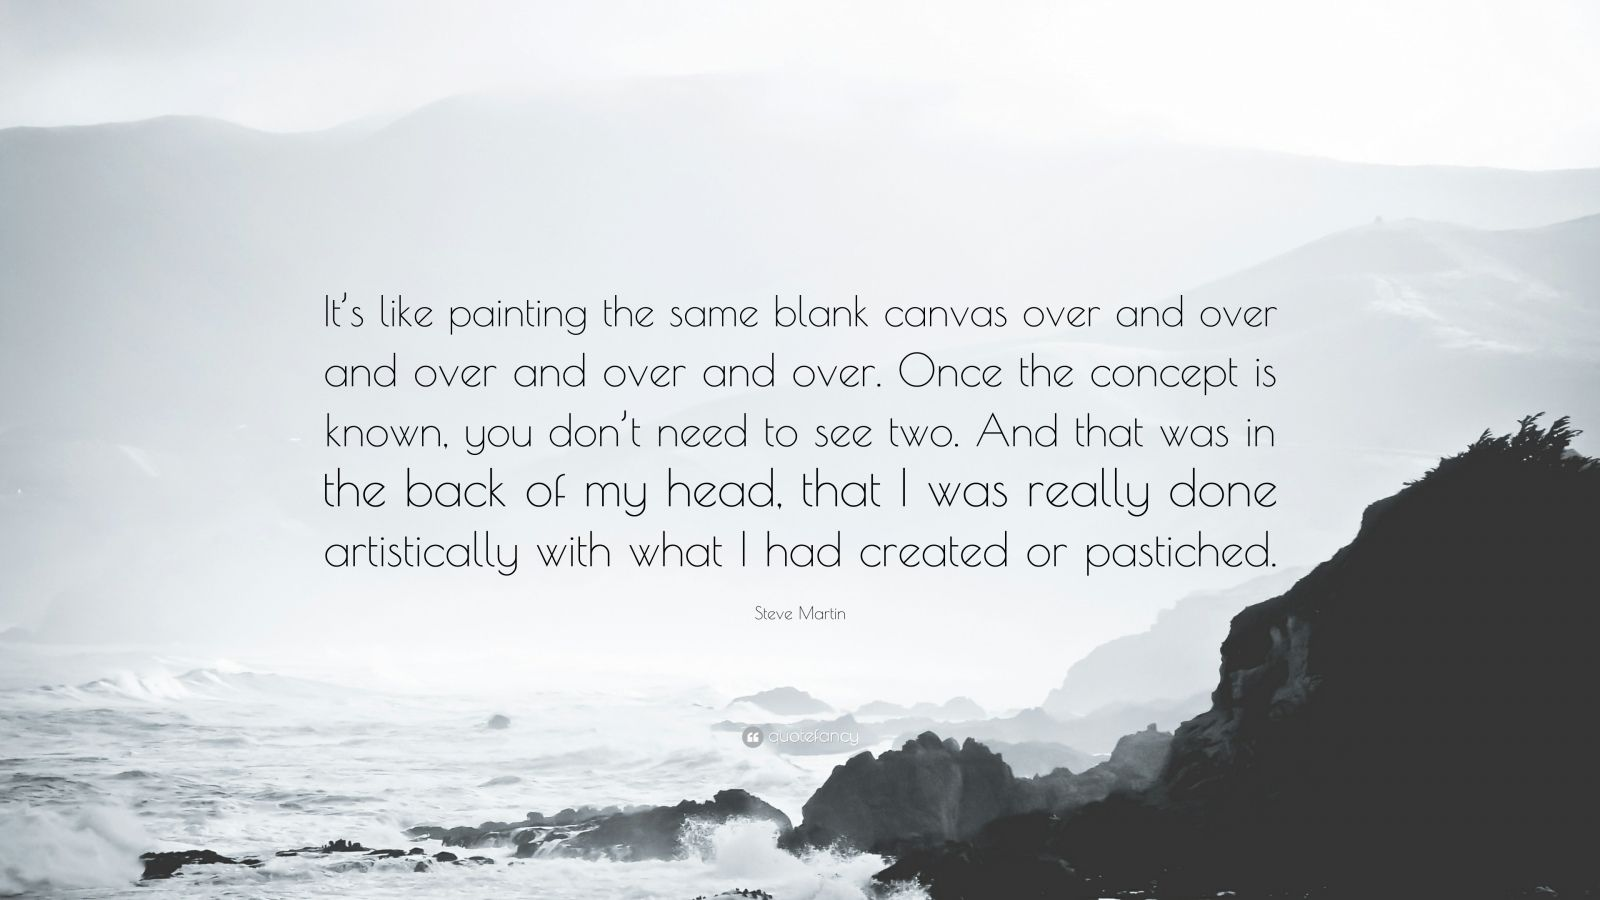 """Steve Martin Quote: """"It's like painting the same blank canvas over and over and over and over and over. Once the concept is known, you don't need to see two. And that was in the back of my head, that I was really done artistically with what I had created or pastiched."""""""